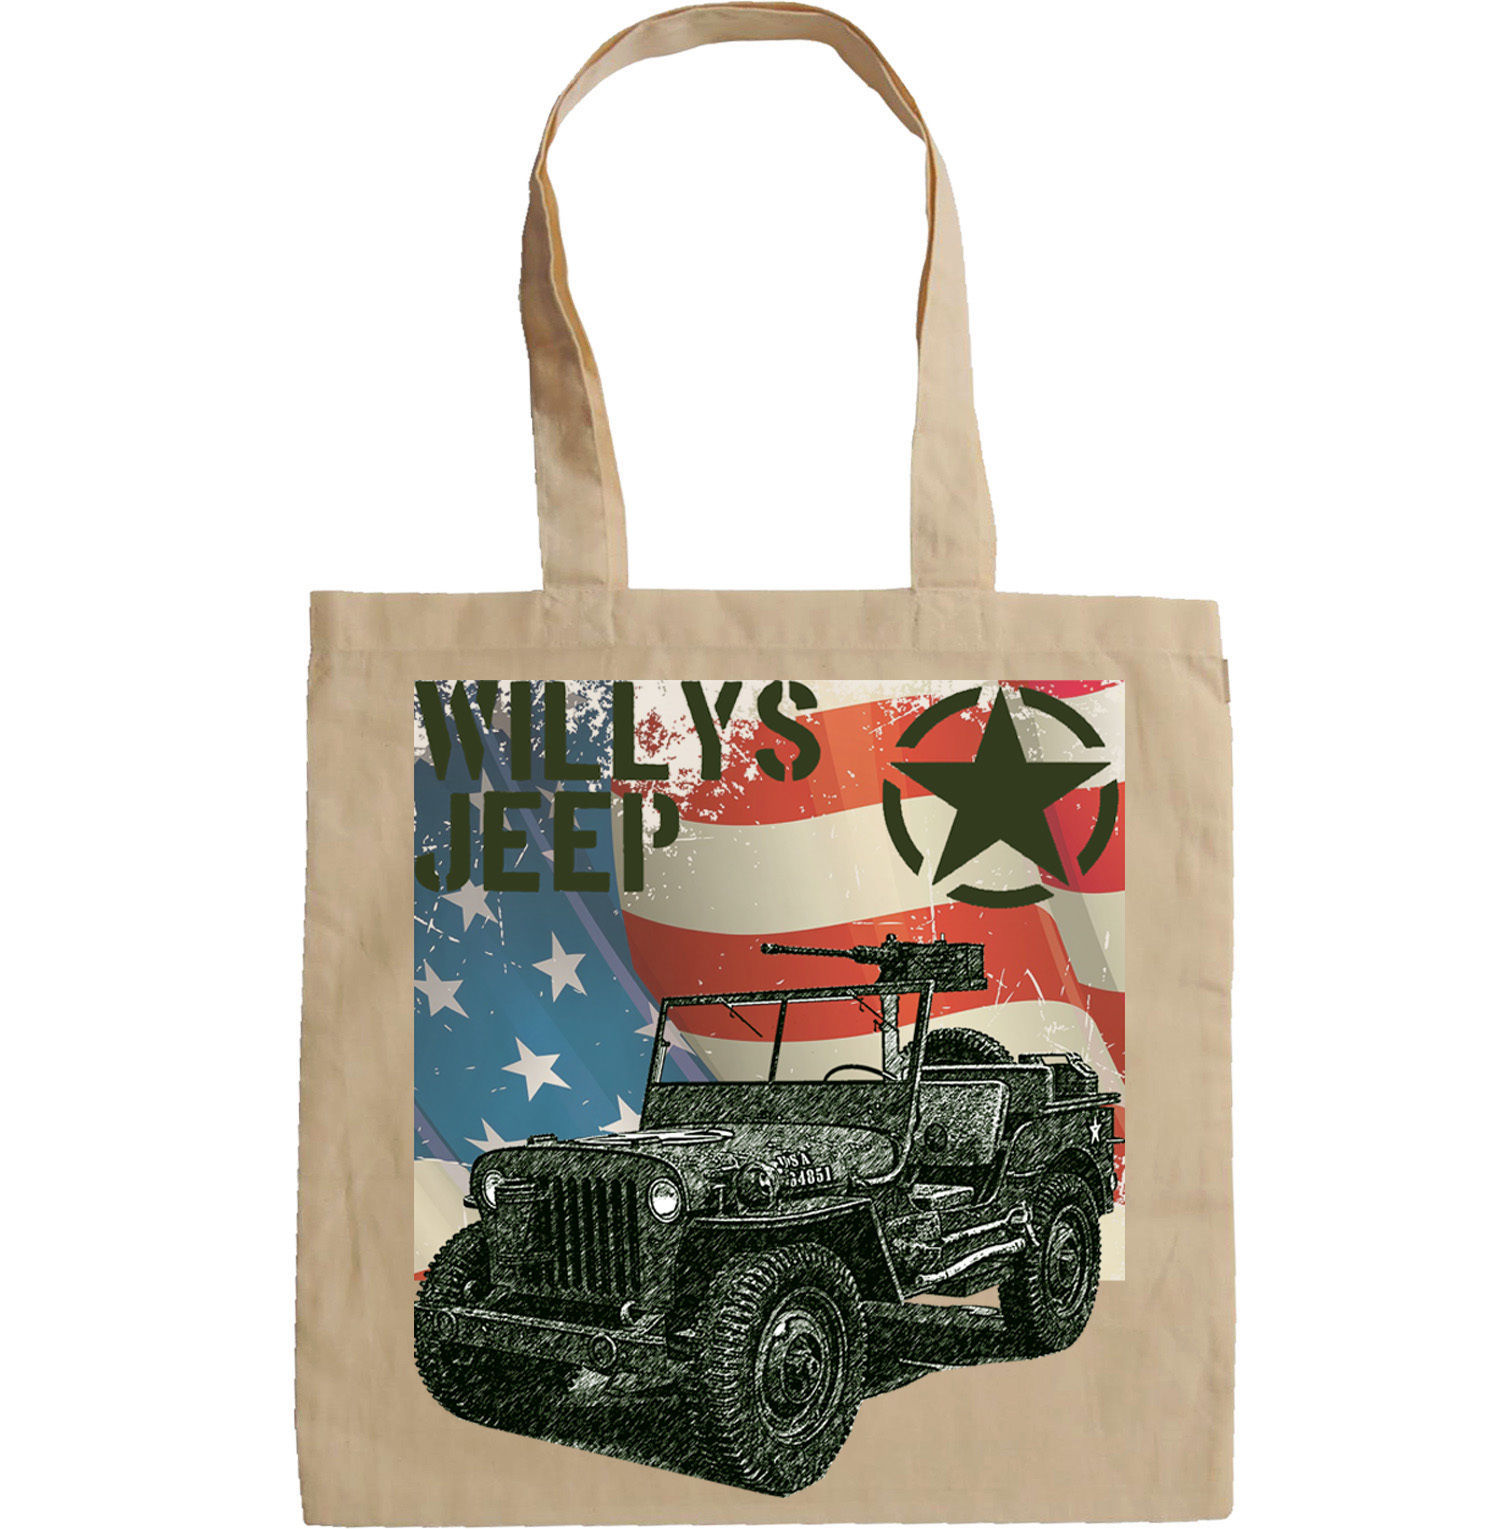 WILLYS JEEP USA ARMY WWII - NEW AMAZING GRAPHIC HAND BAG/TOTE BAG